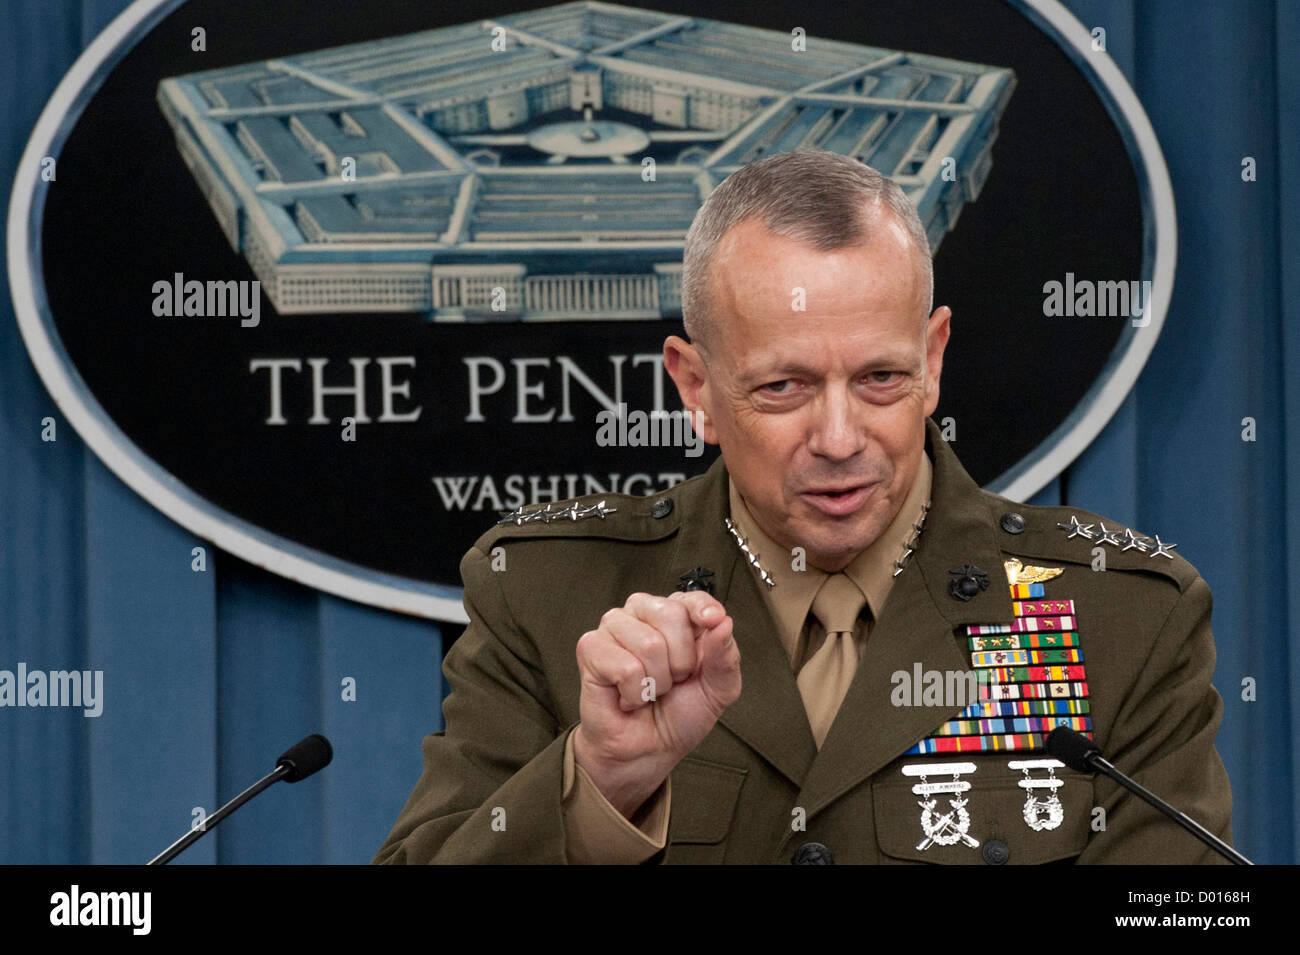 120326-D-BW835-139 Commander International Security Assistance Force and U.S. Forces Afghanistan Gen. John R. Allen, - Stock Image